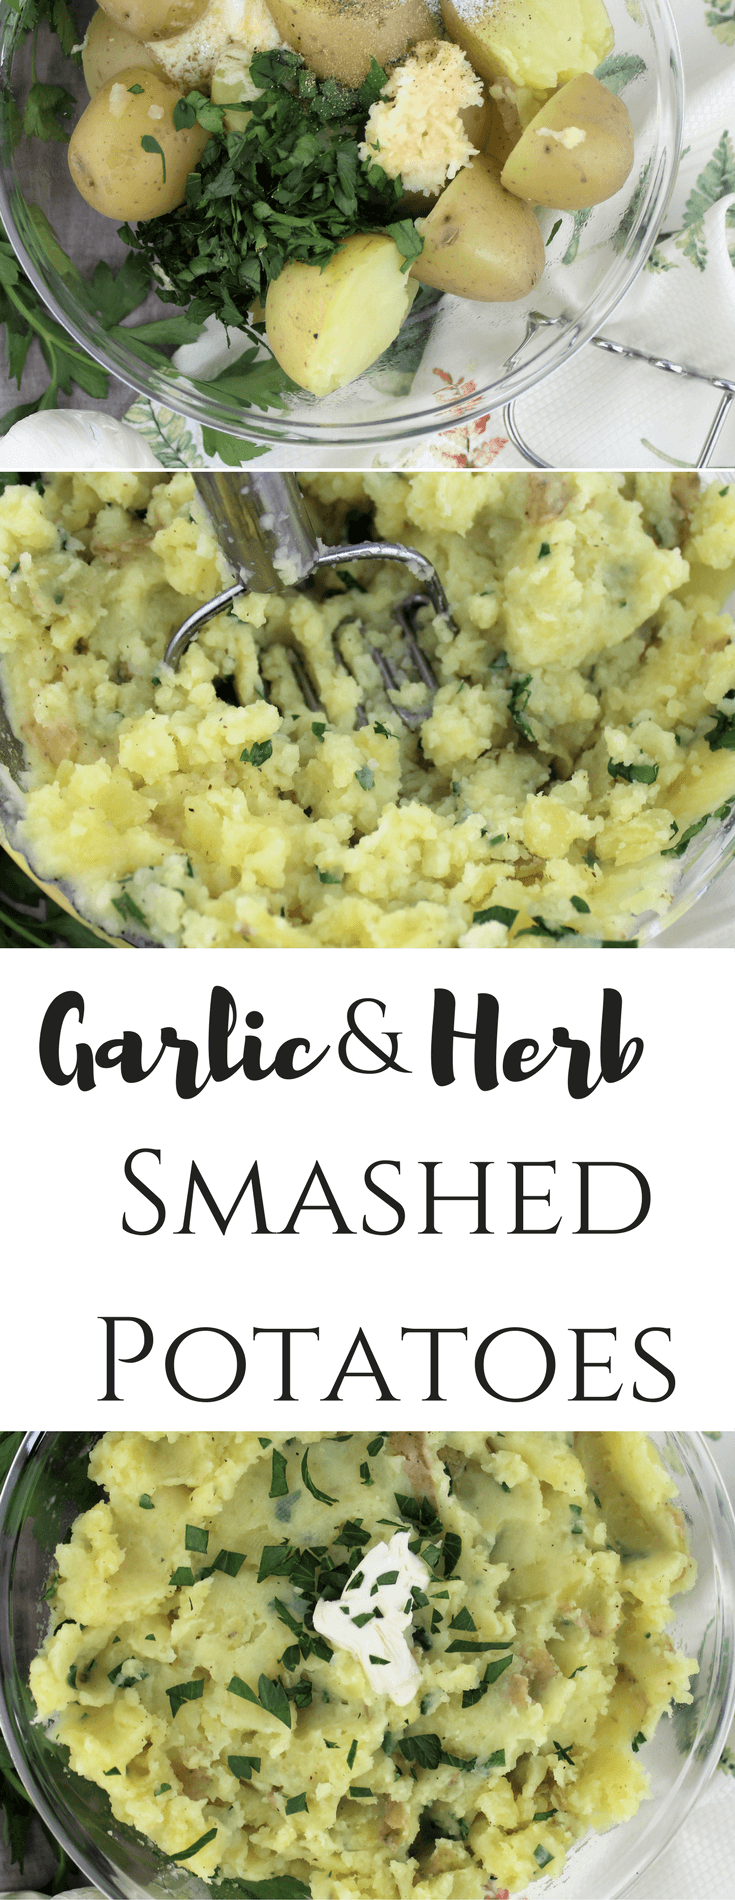 Garlic & Herb Smashed Potatoes